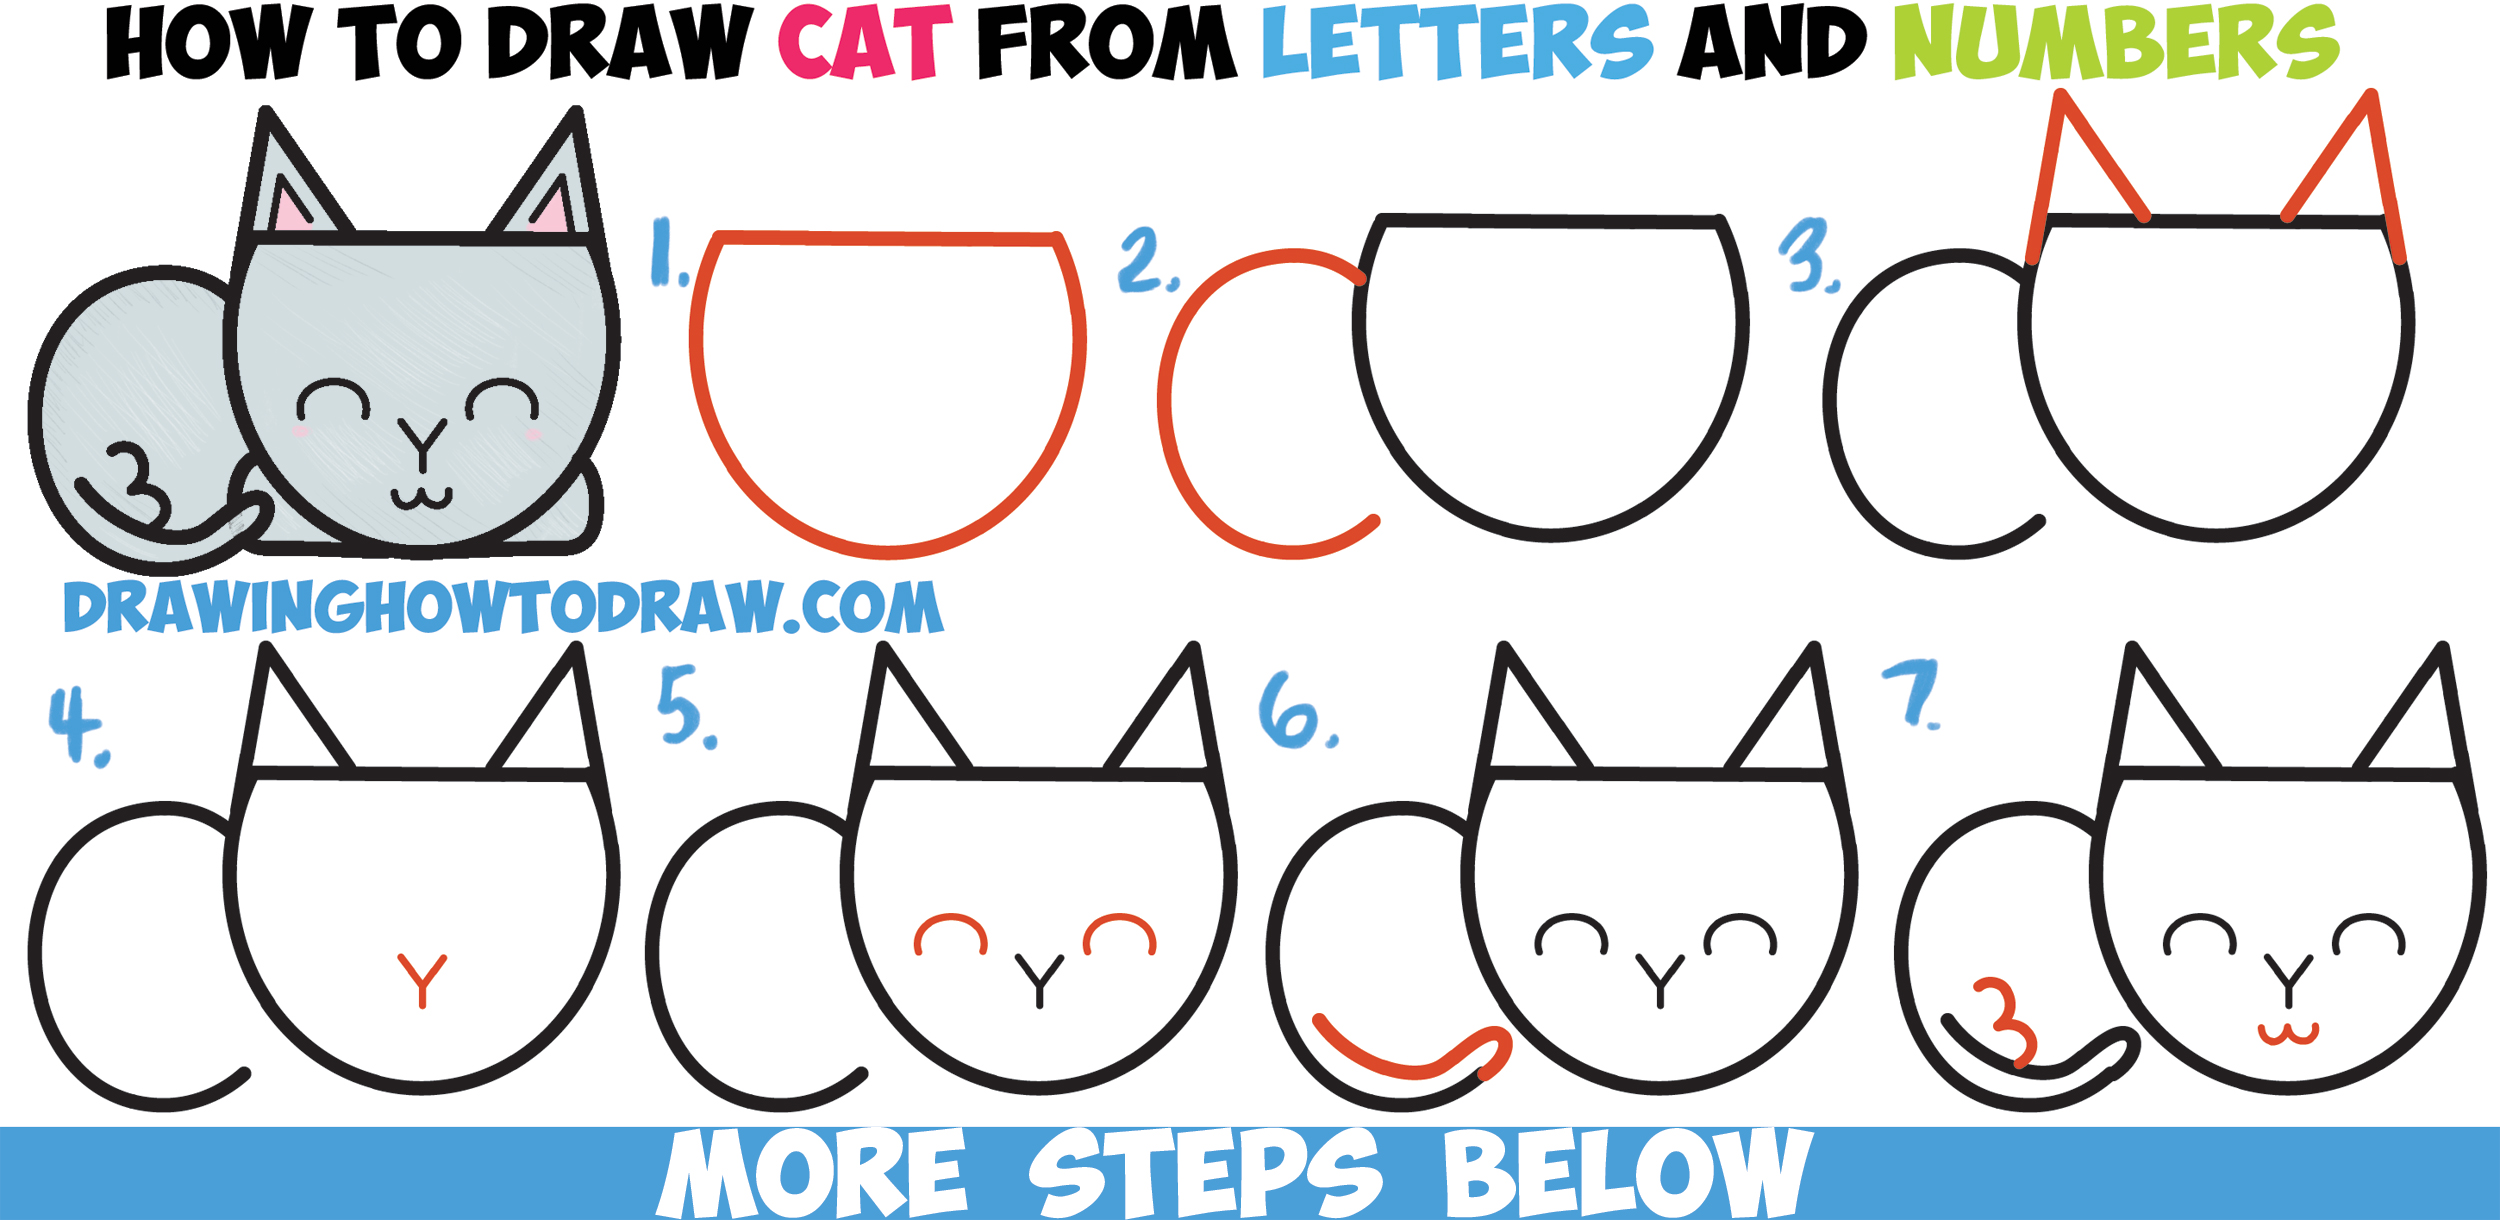 Cat step by step drawing at getdrawings free for personal use 2500x1220 how to draw a cute cartoon cat completely from letters numbers altavistaventures Gallery